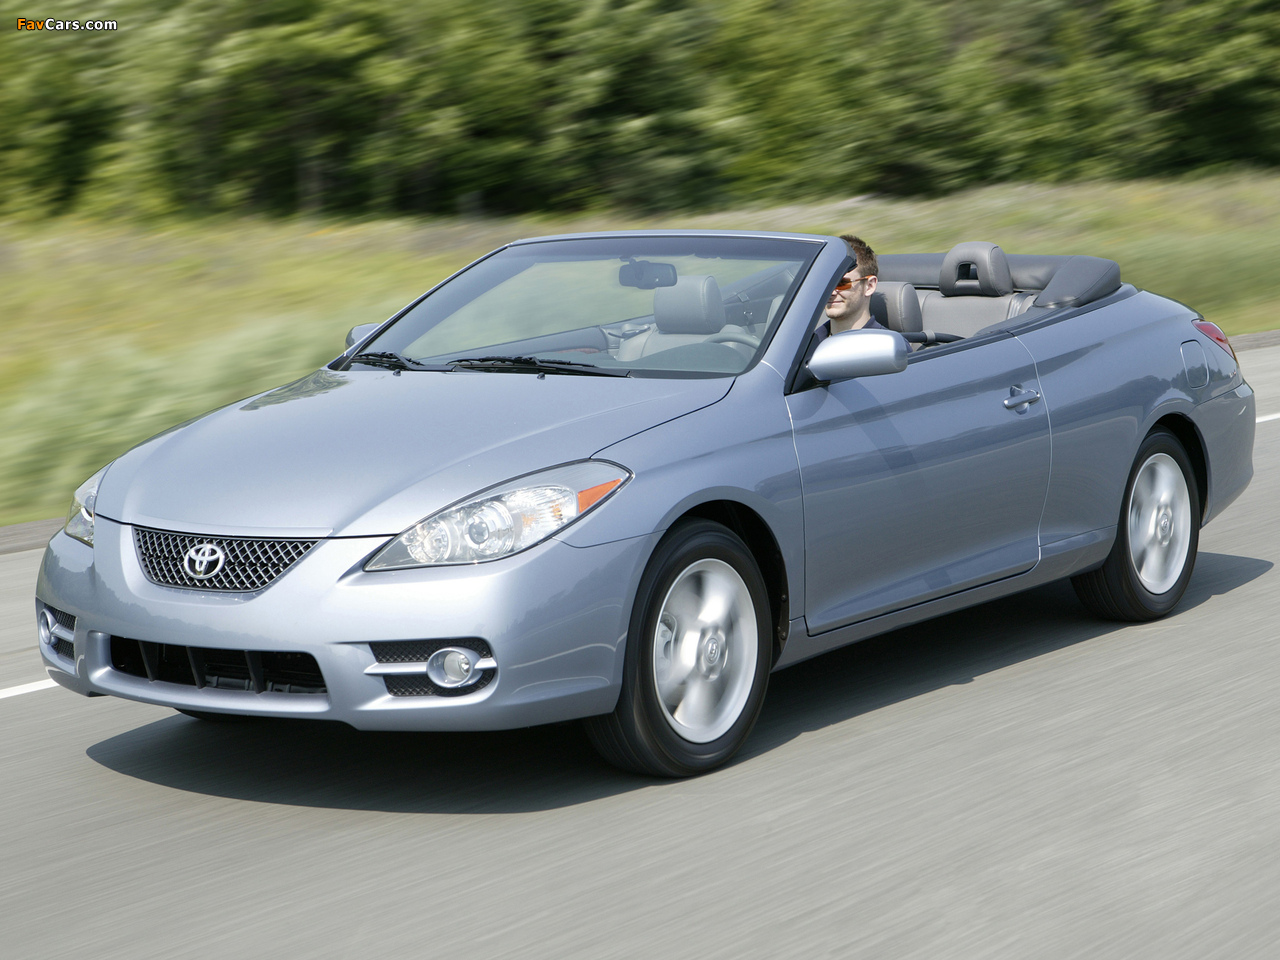 Toyota Camry Solara Convertible 2006 09 Images 1280x960